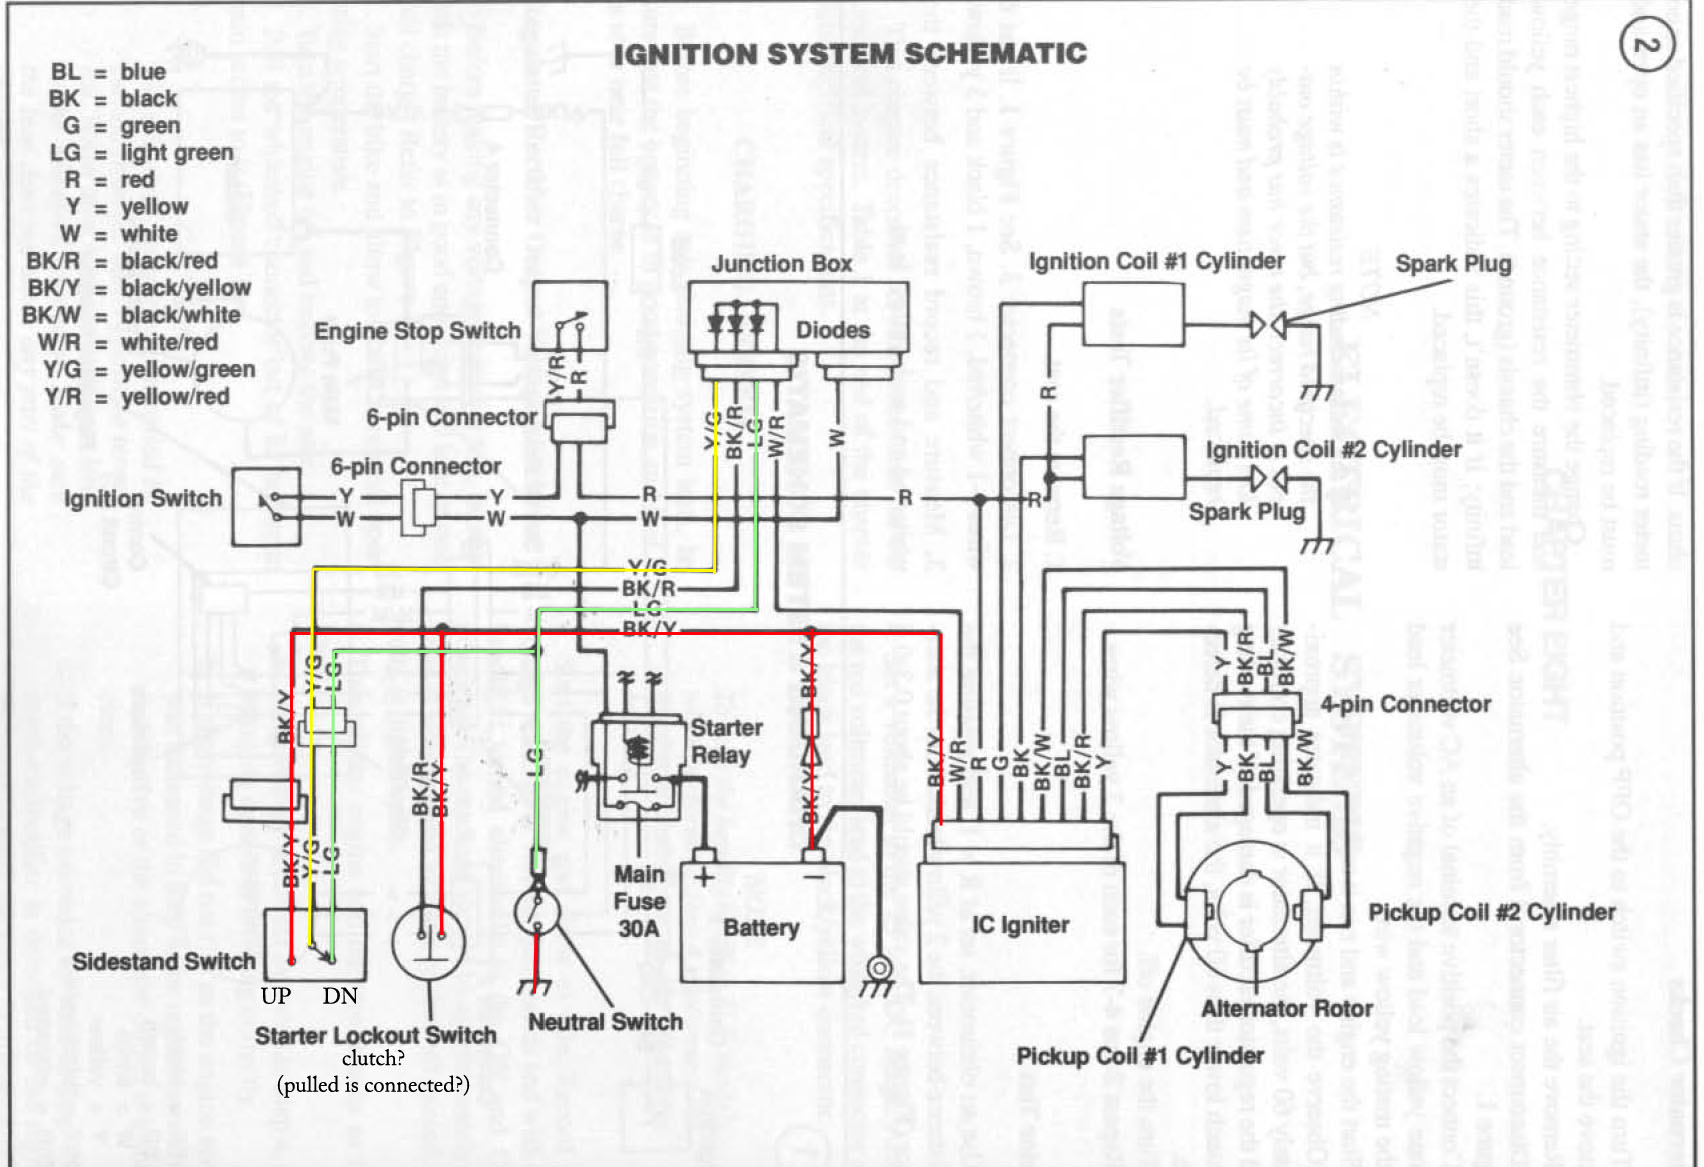 Kawasaki Ignition Coil Wiring Diagram Great Design Of Starter Schematic For Mule 610 Fuel System Free 1976 Corvette Vn1500